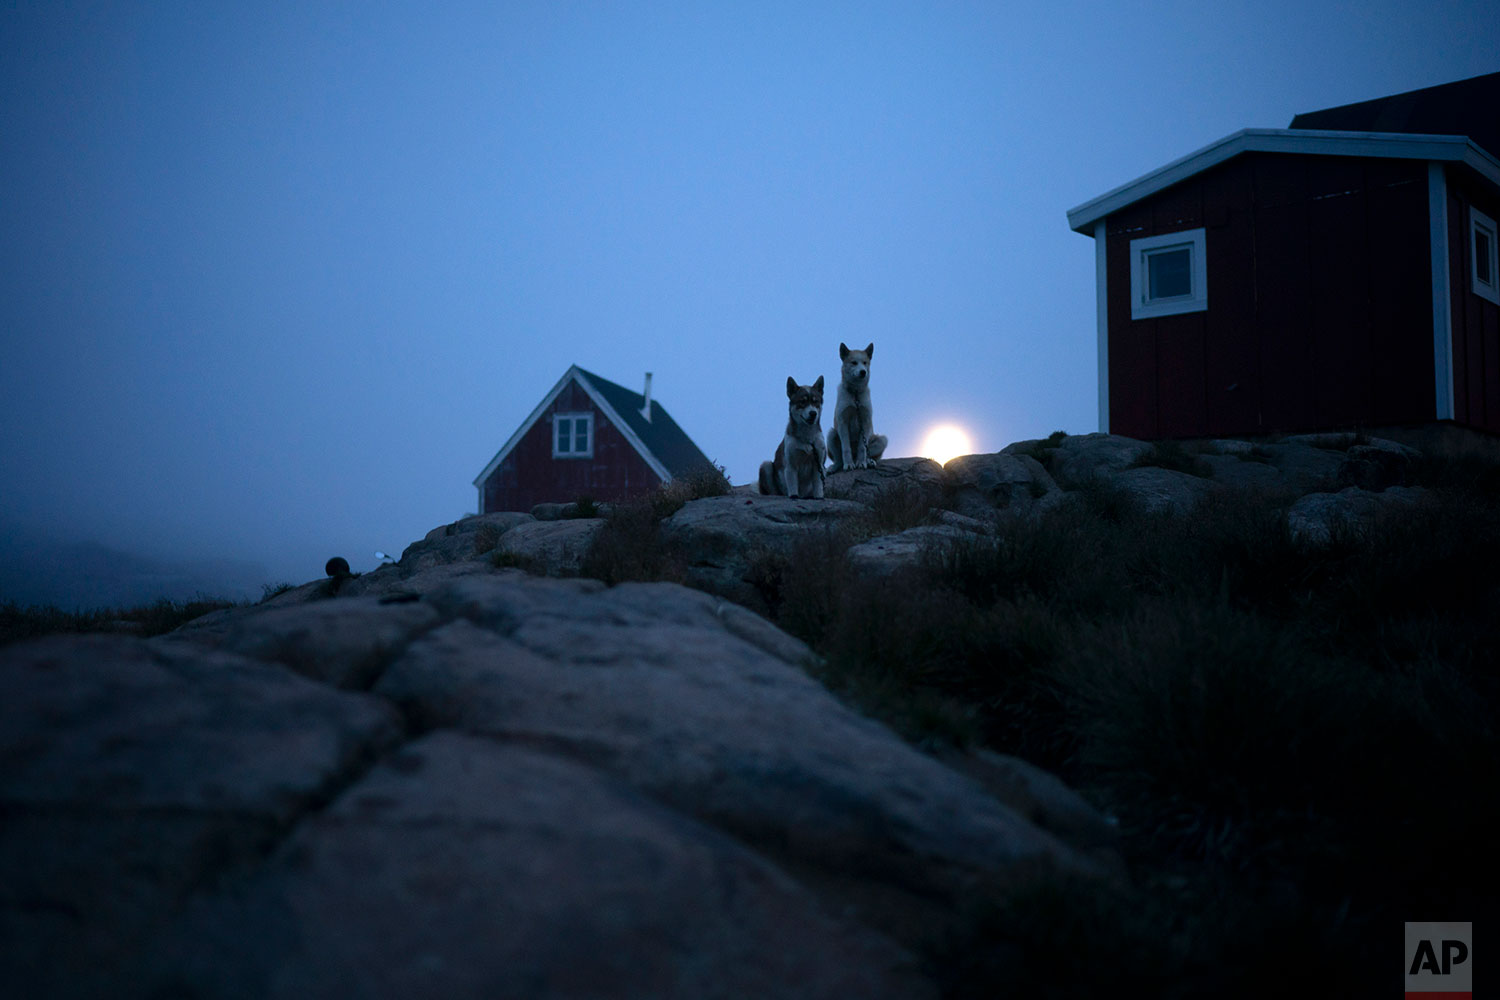 Dogs sit outside a home in Kulusuk, Greenland, Thursday, early Aug. 15, 2019. Greenland has been melting faster in the last decade and this summer, it has seen two of the biggest melts on record since 2012. (AP Photo/Felipe Dana)